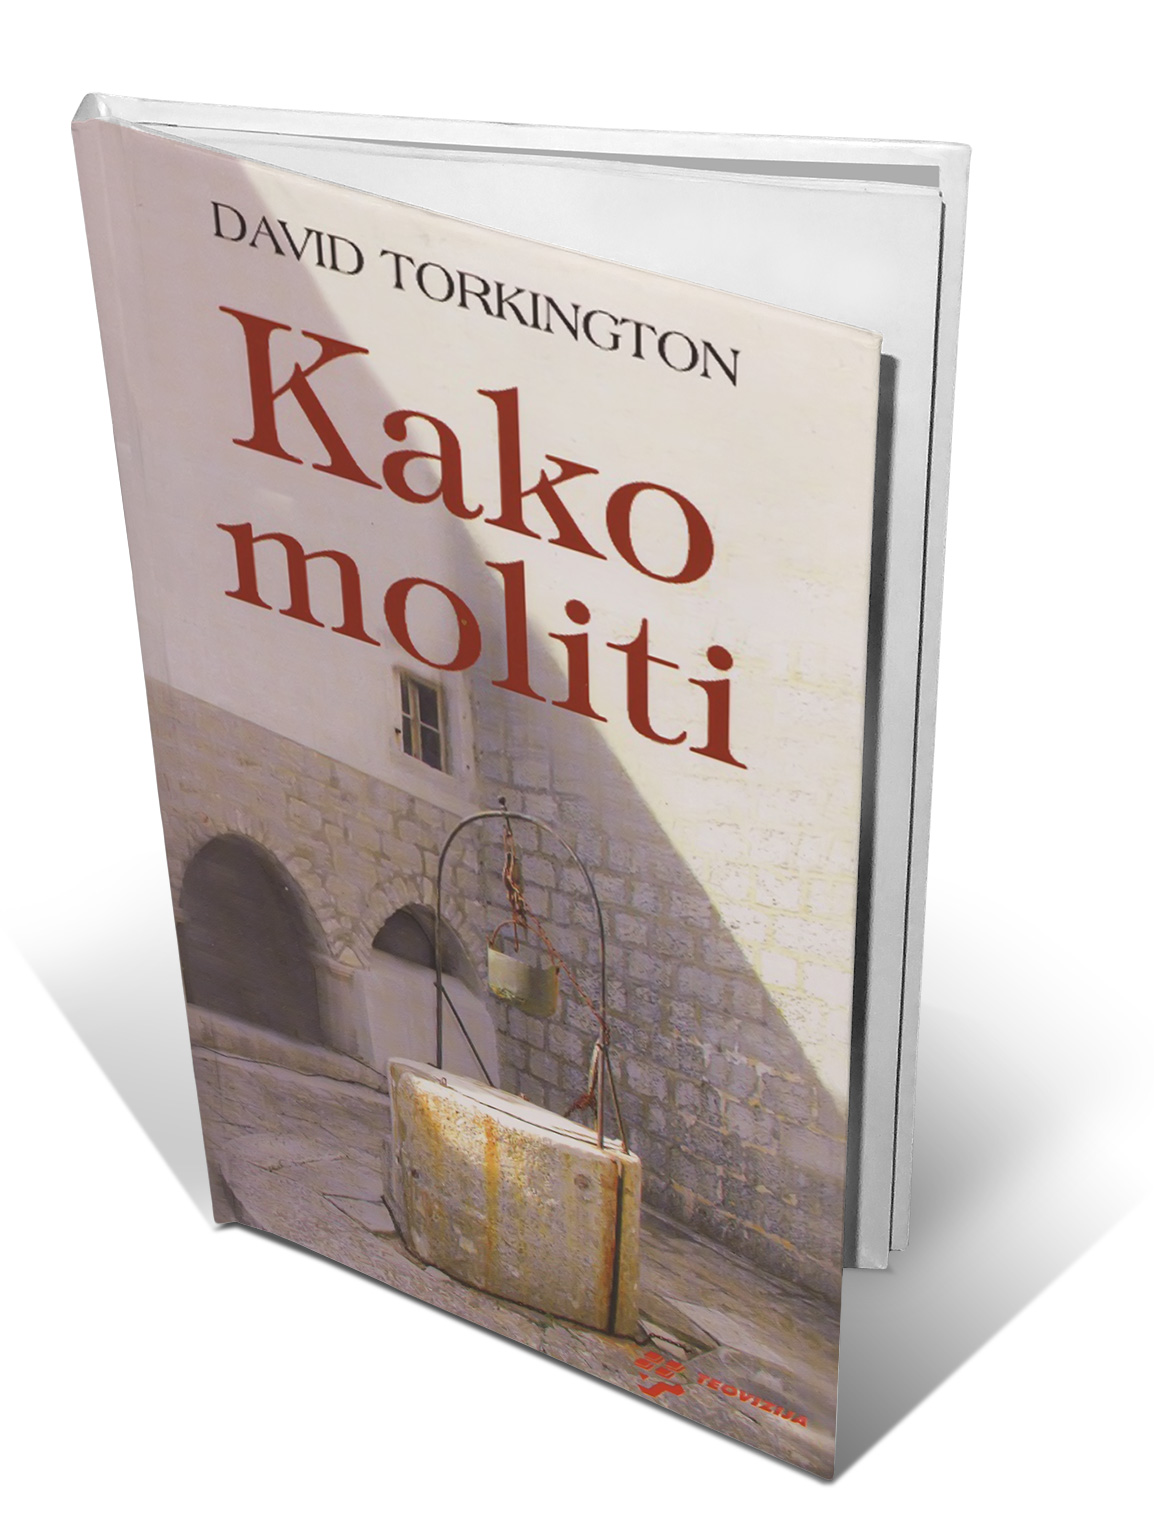 KAKO MOLITI - David Torkington